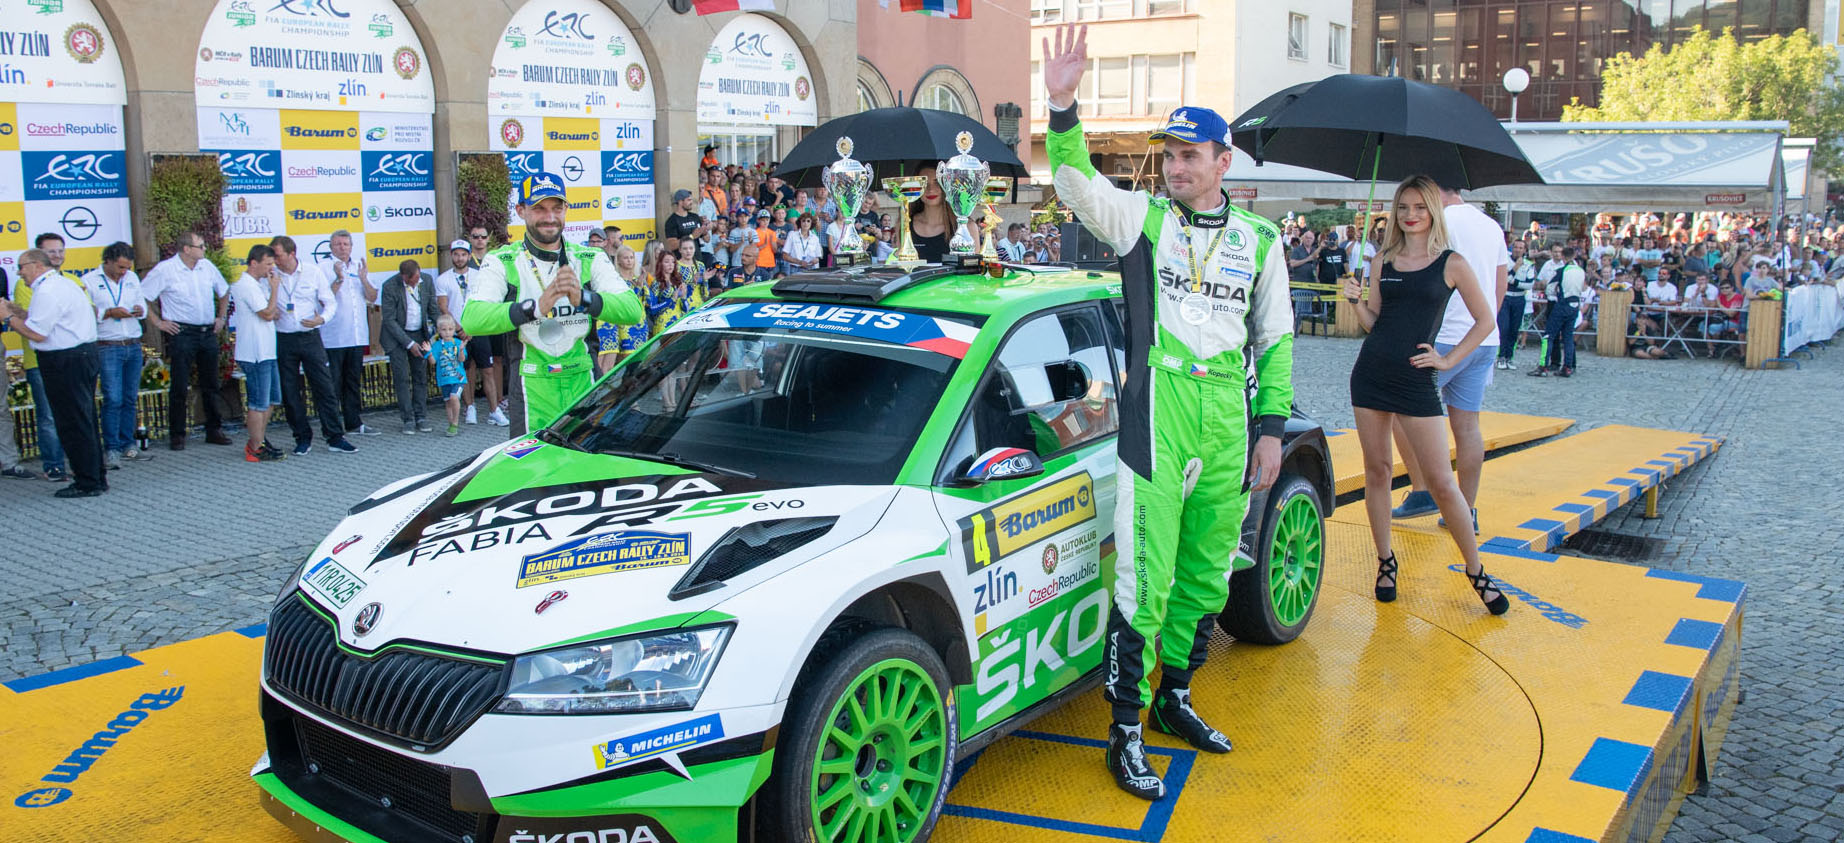 Jan Kopecký and Pavel Dresler are the Czech Rally Champions